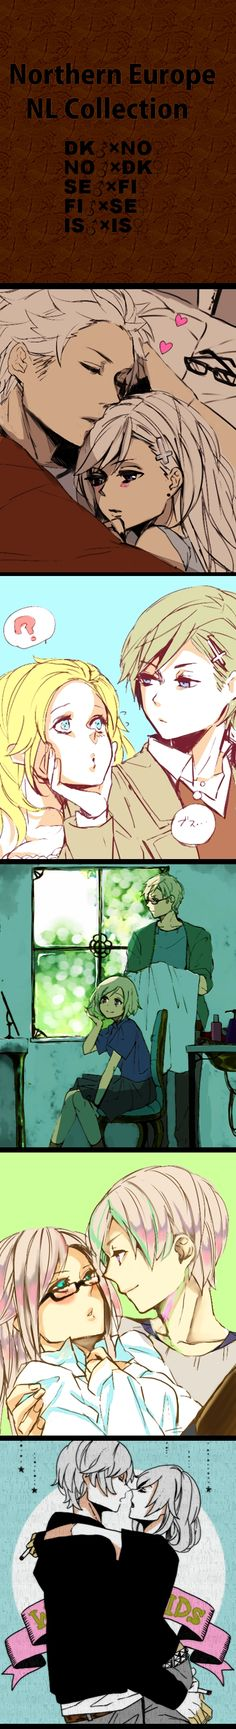 Hetalia Nordics. Het!SuFin, Het!DenNor, and Iceland and ... Iceland. (Iceland seems like a egomaniac in this pic)